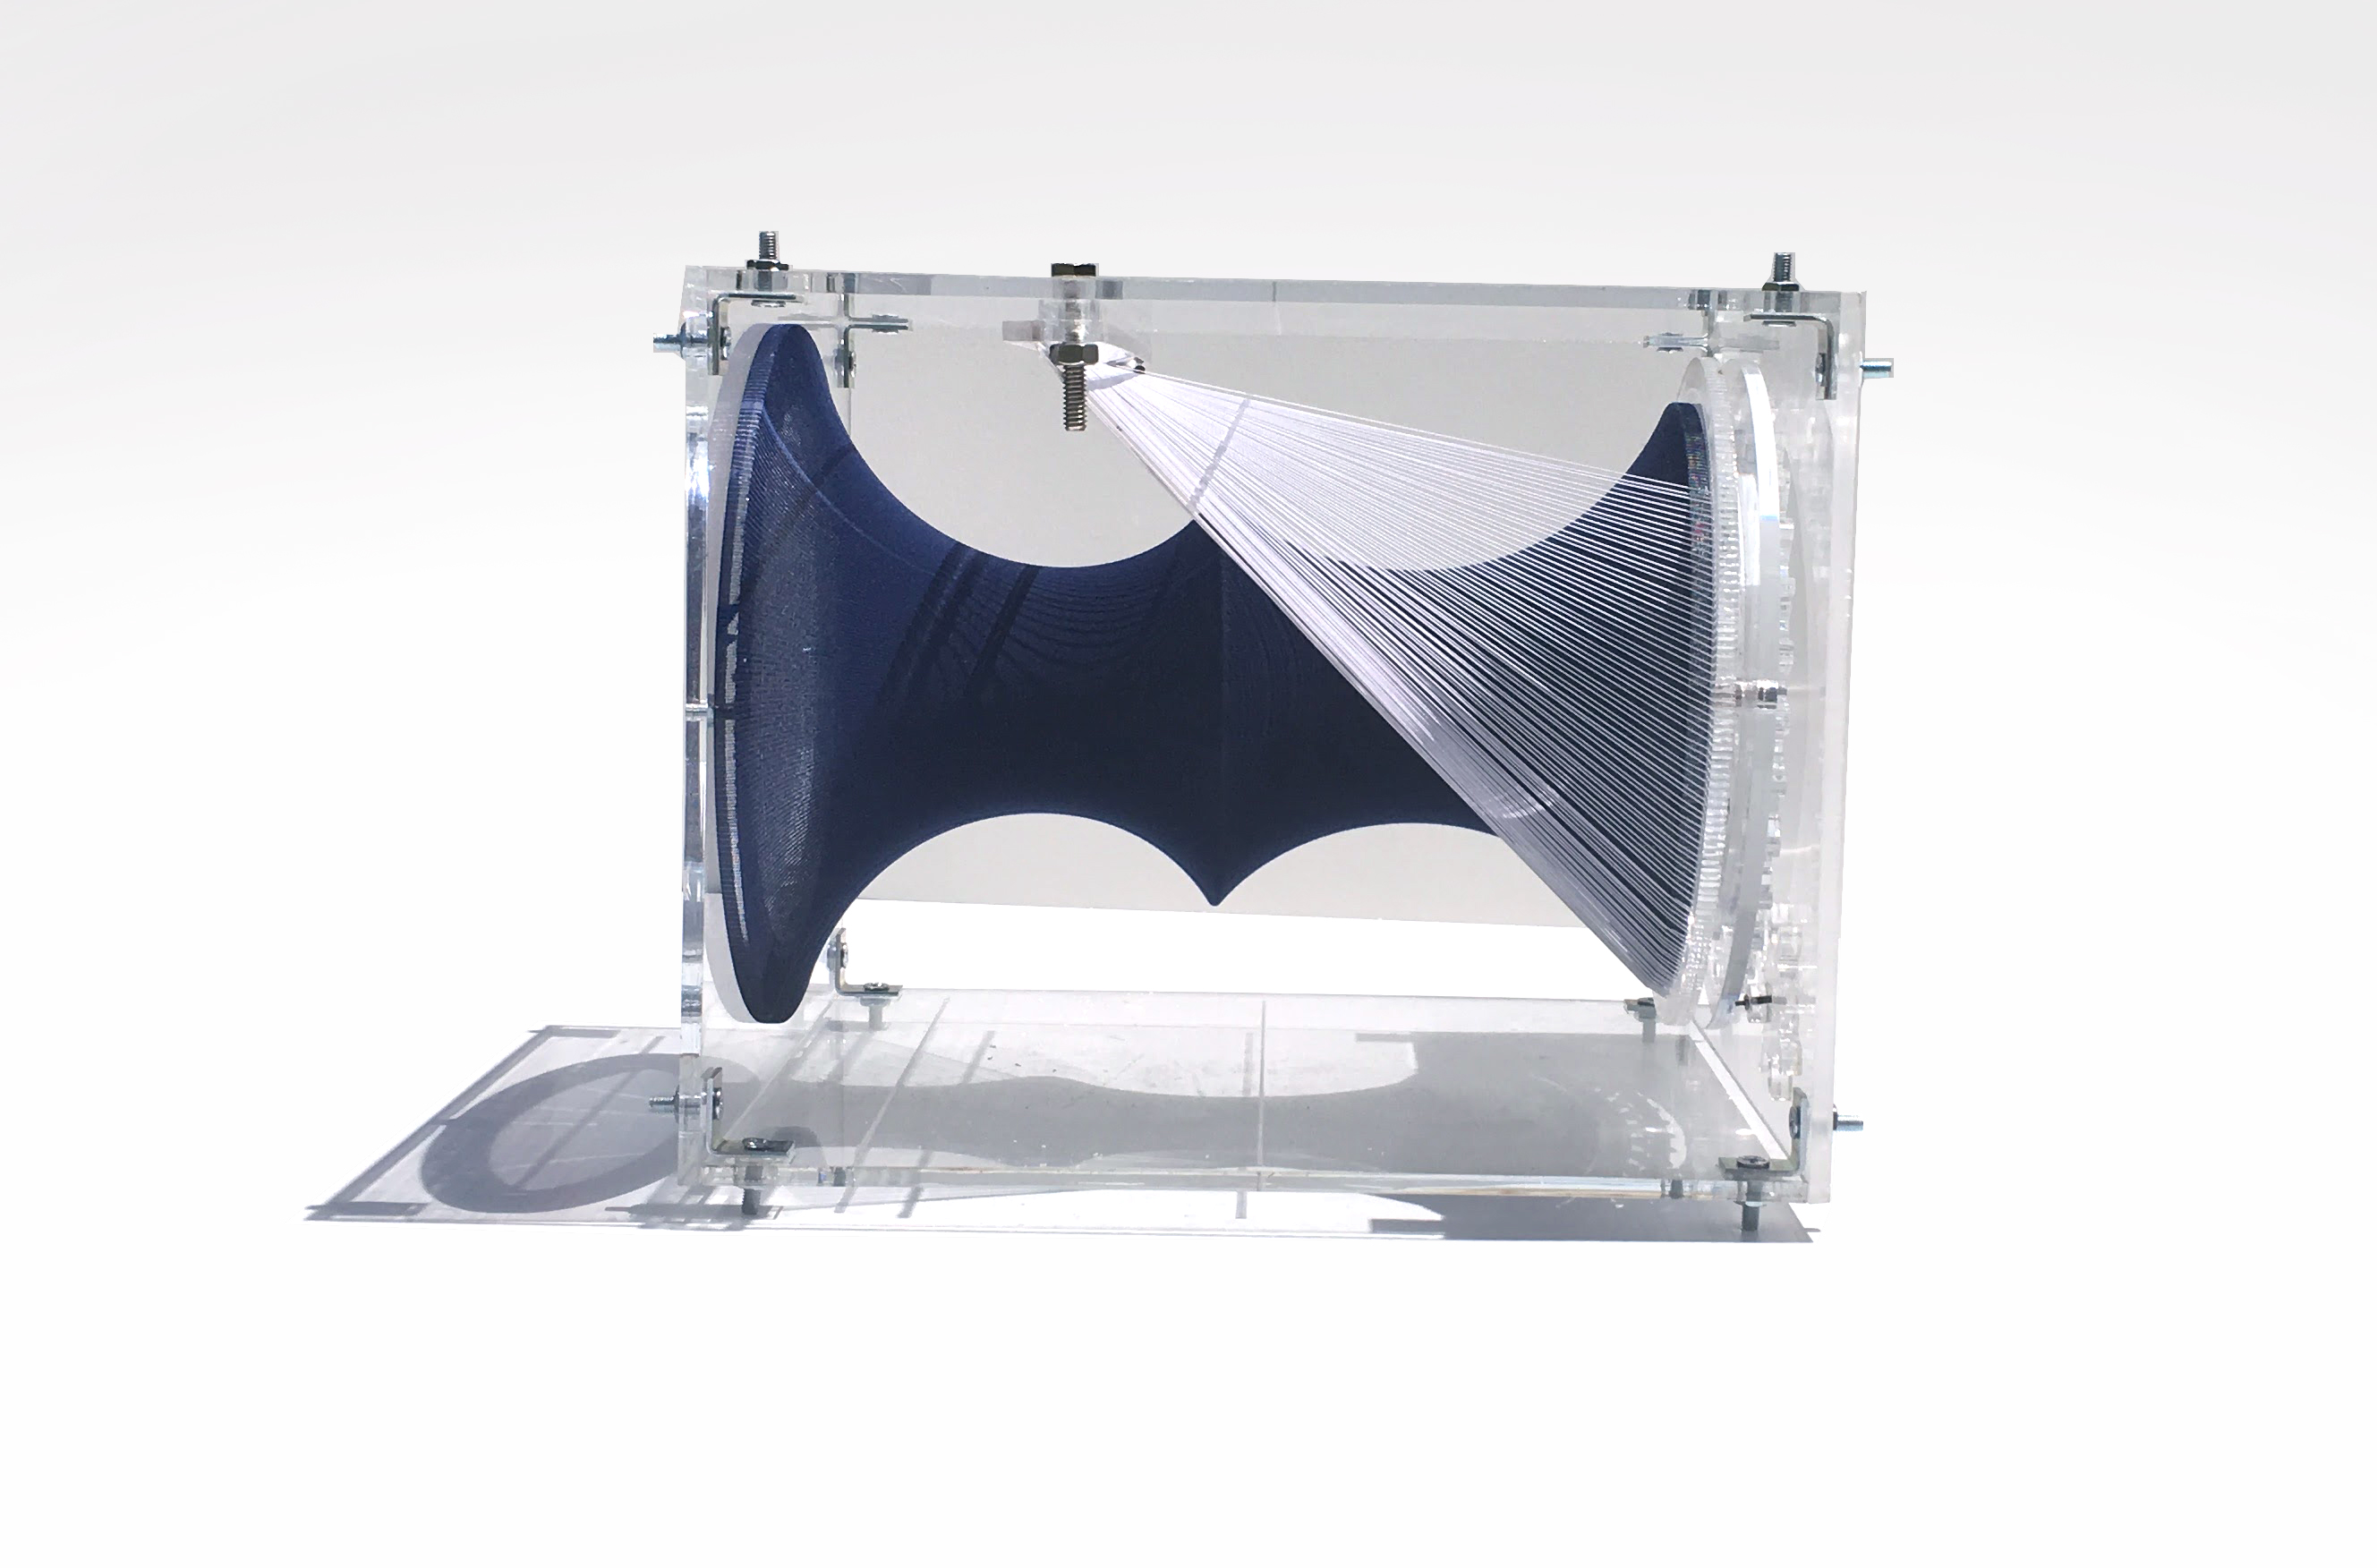 constructed acrylic box holding a textile form in tension